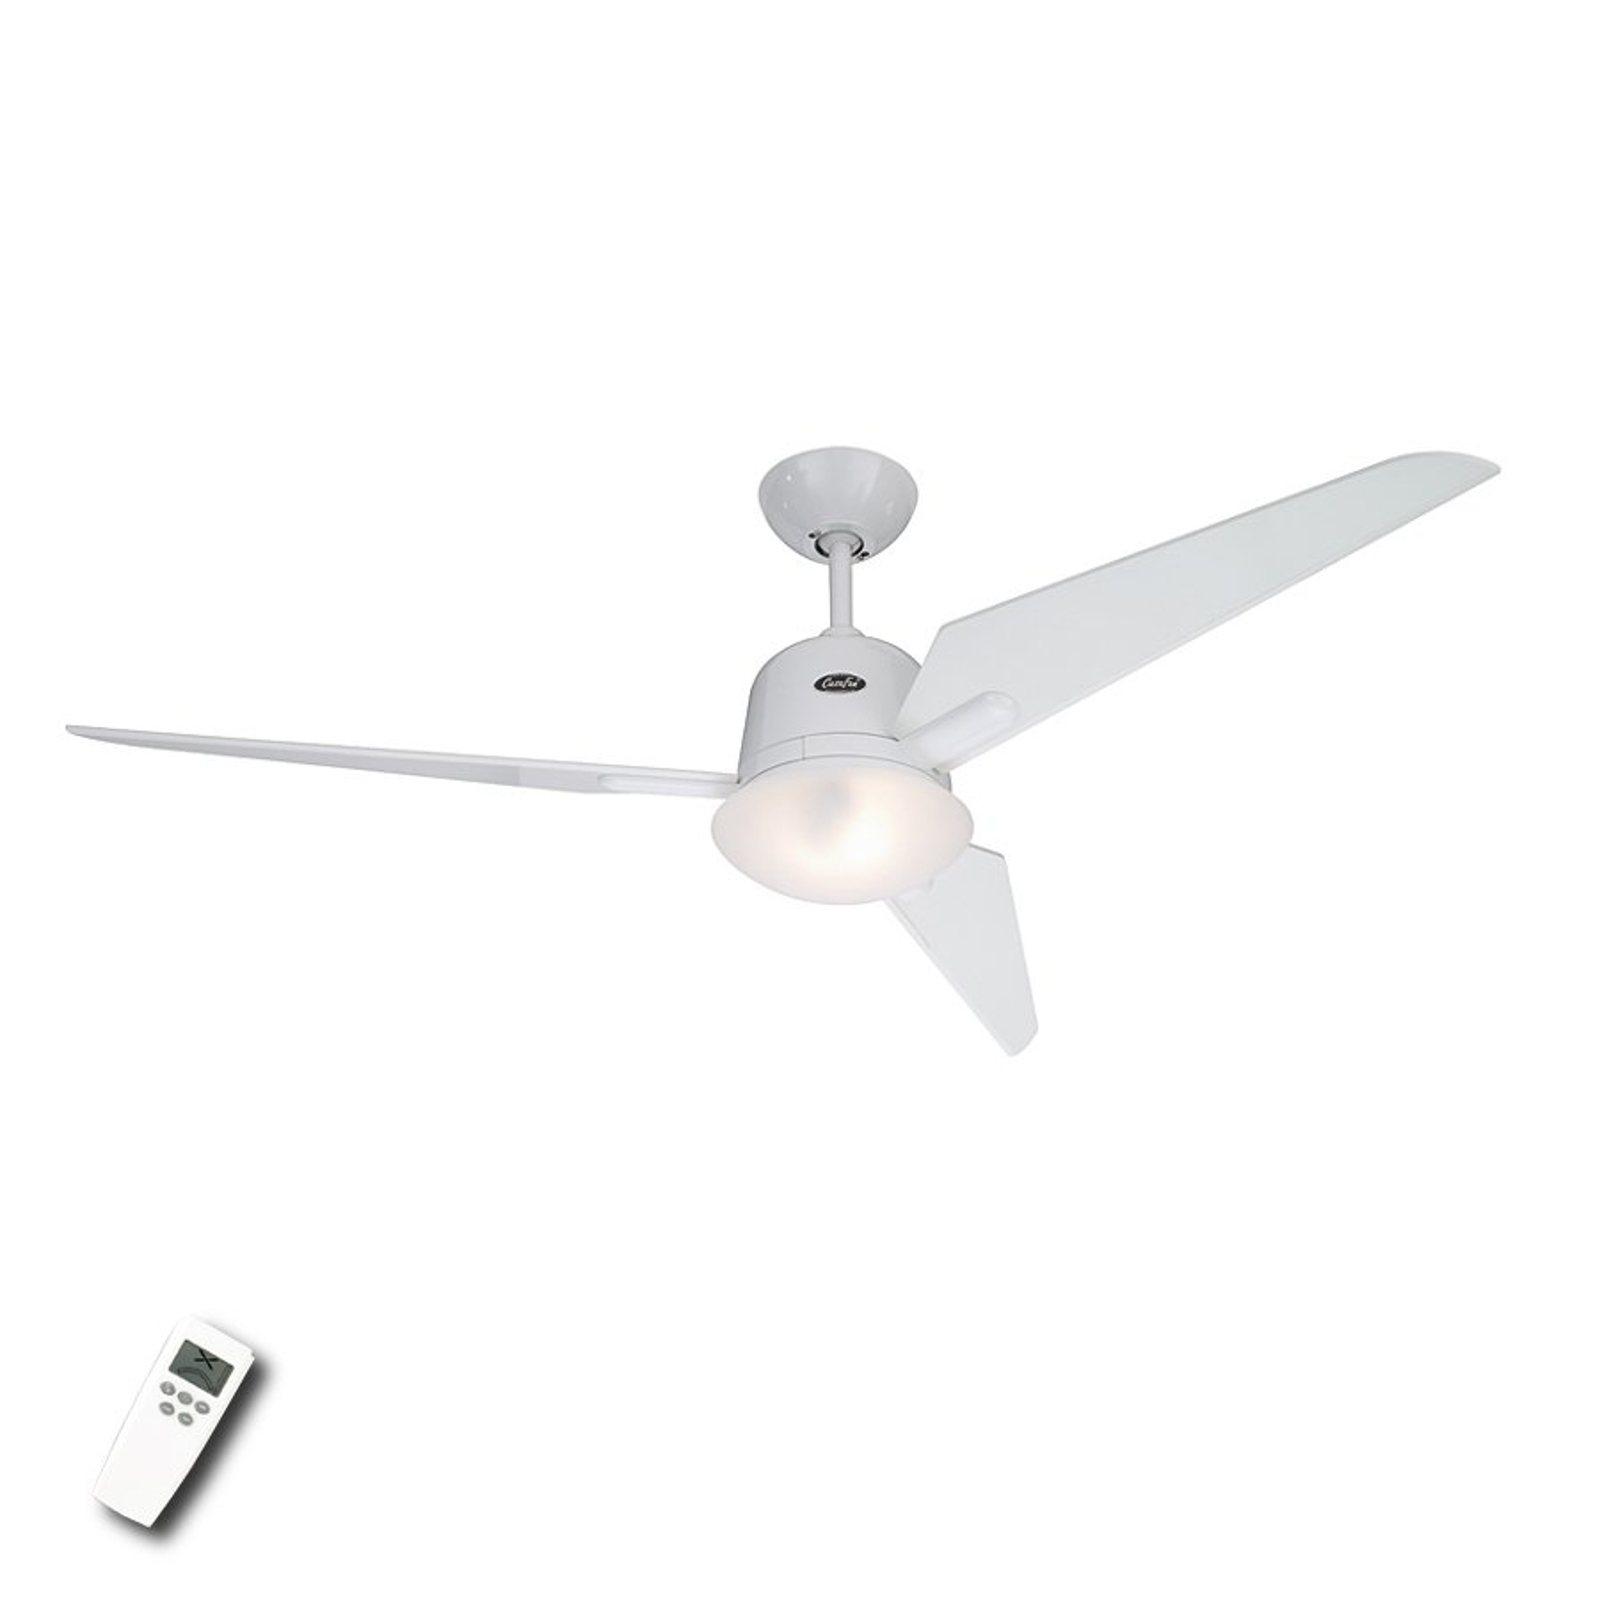 Eco Aviatos ceiling fan white_2015022_1